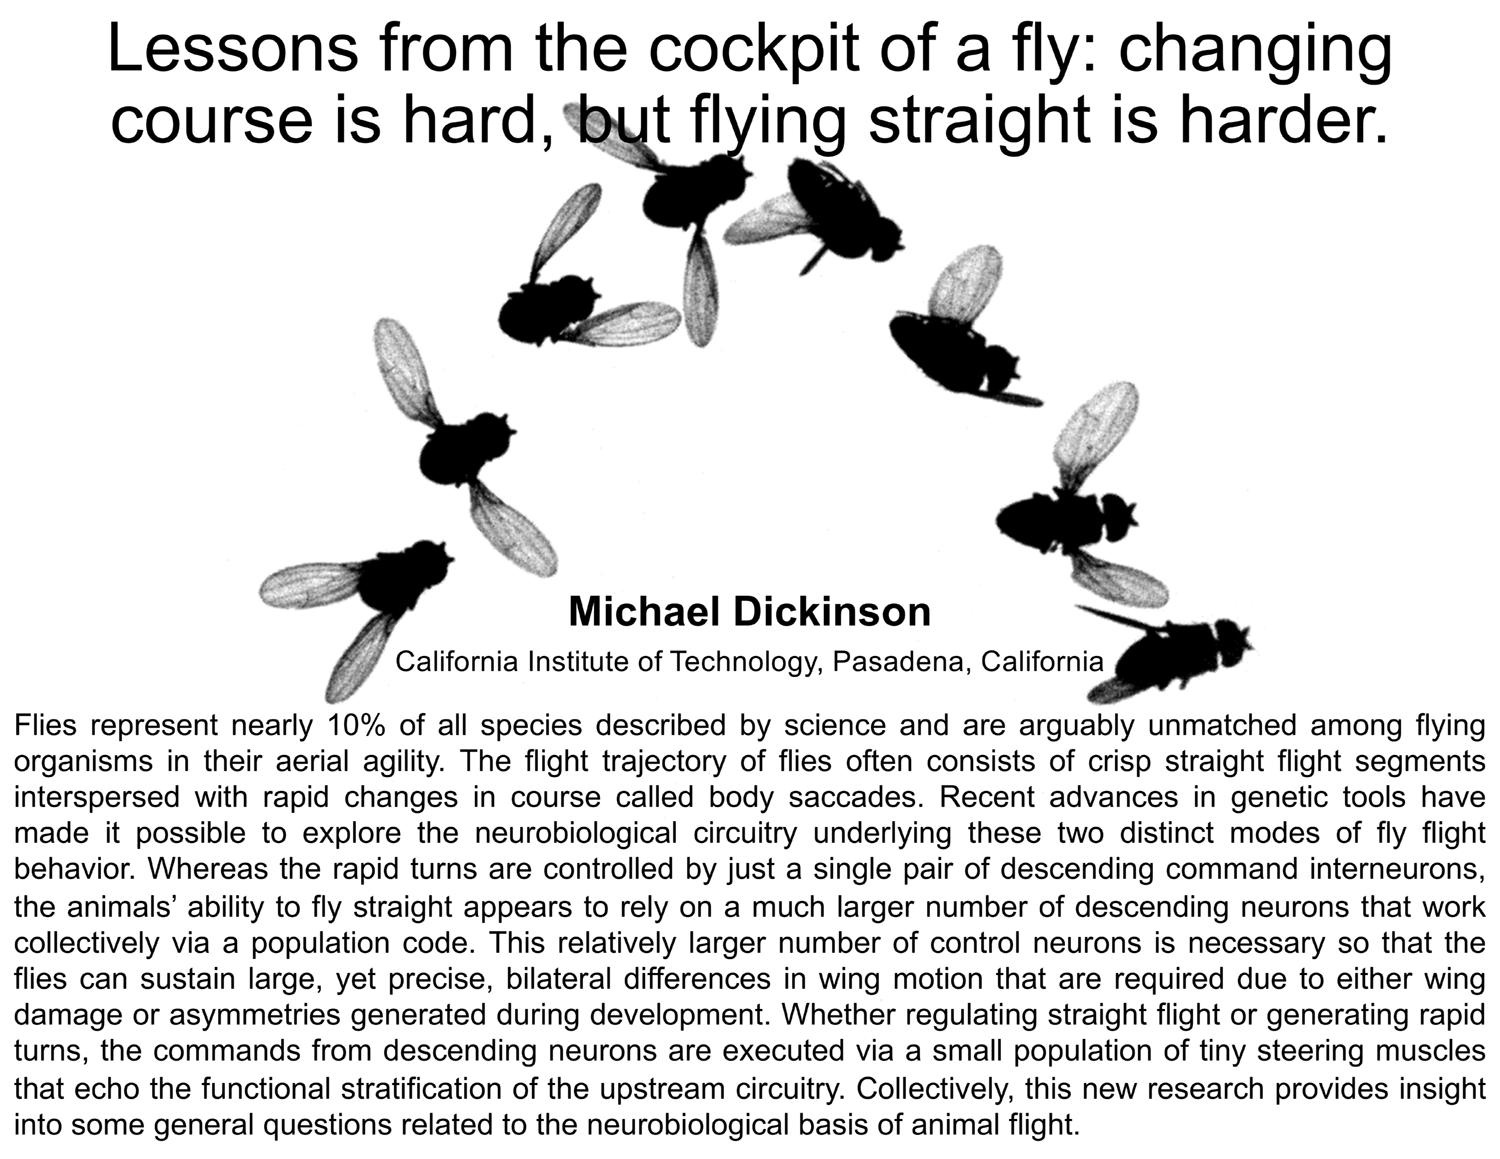 Plenary: Lessons from the cockpit of a fly: changing course is hard, but flying straight is harder.